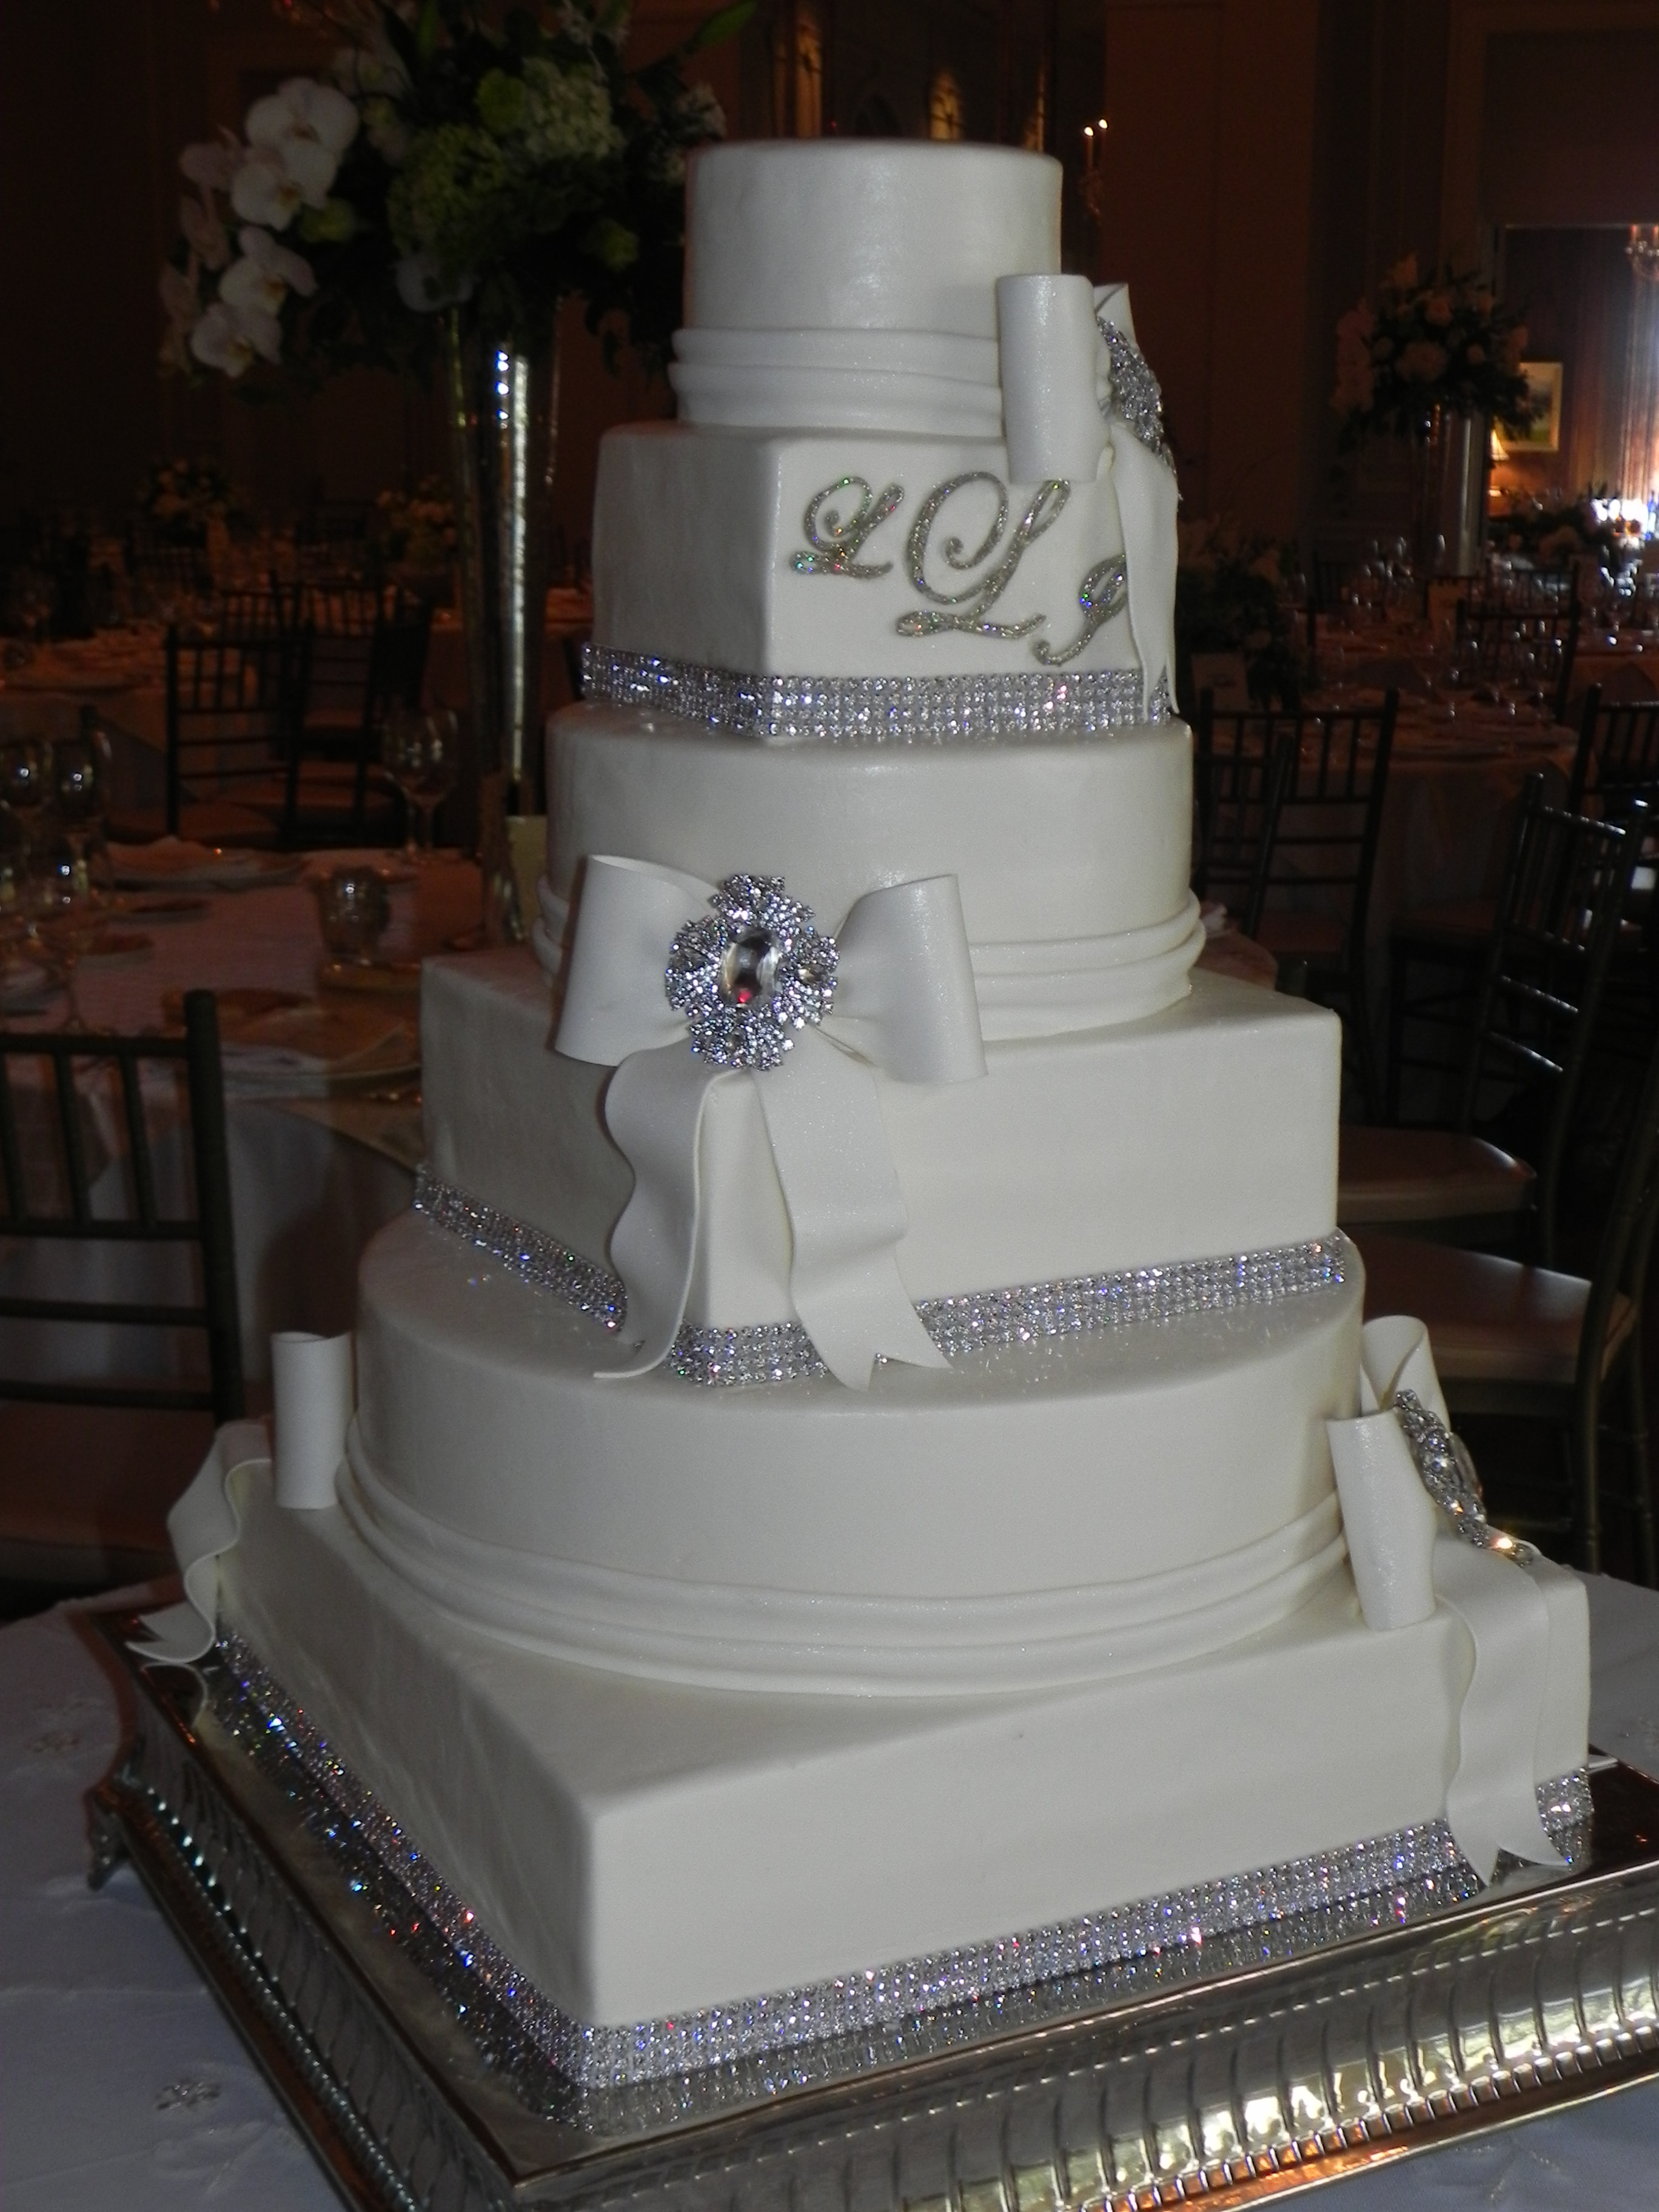 Wedding Cakes With Rhinestones  Rhinestones and brooches wedding cake with bows and